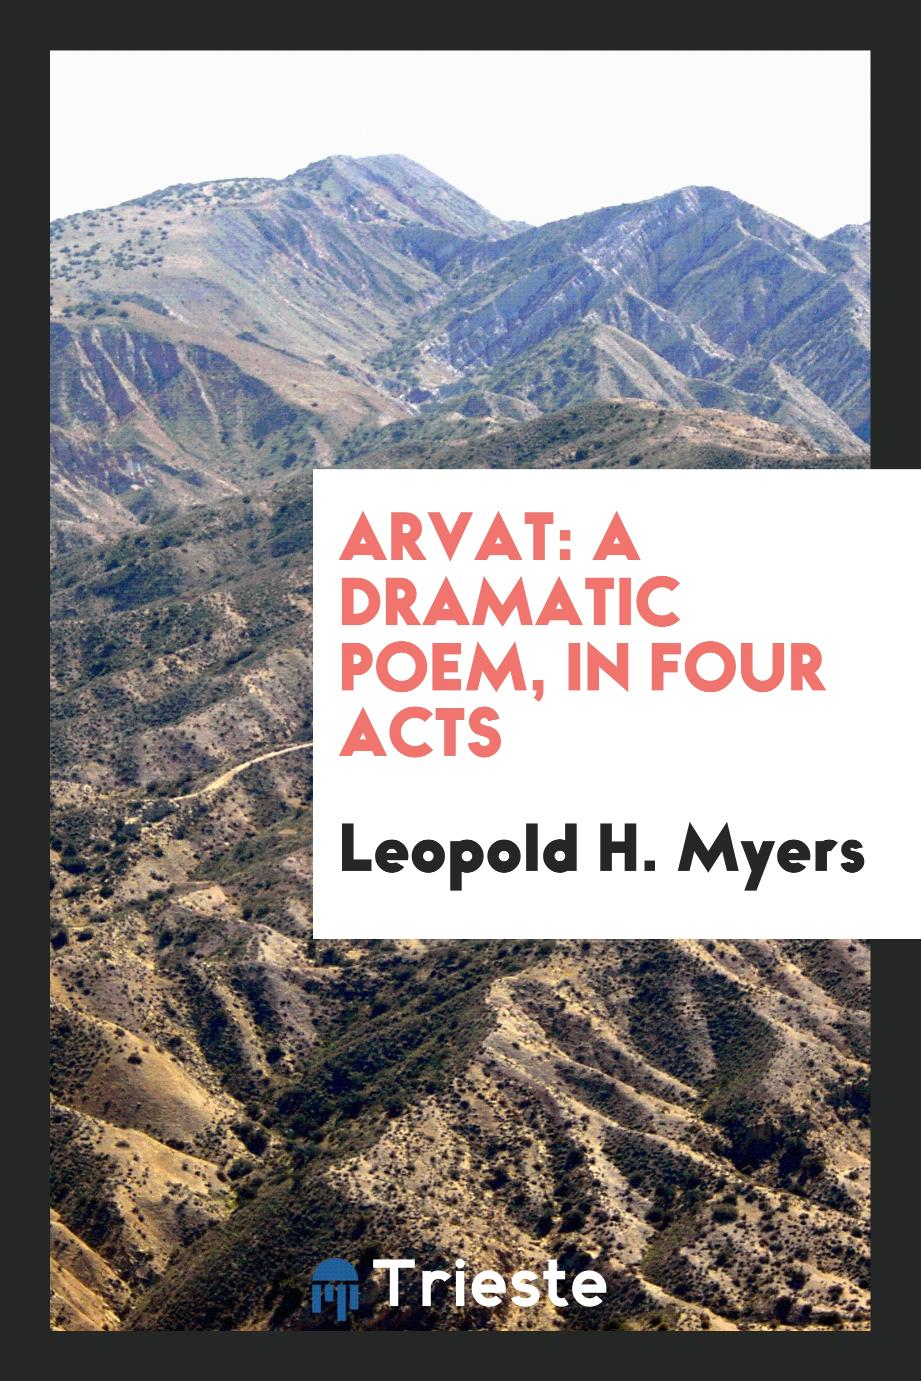 Arvat: A Dramatic Poem, in Four Acts